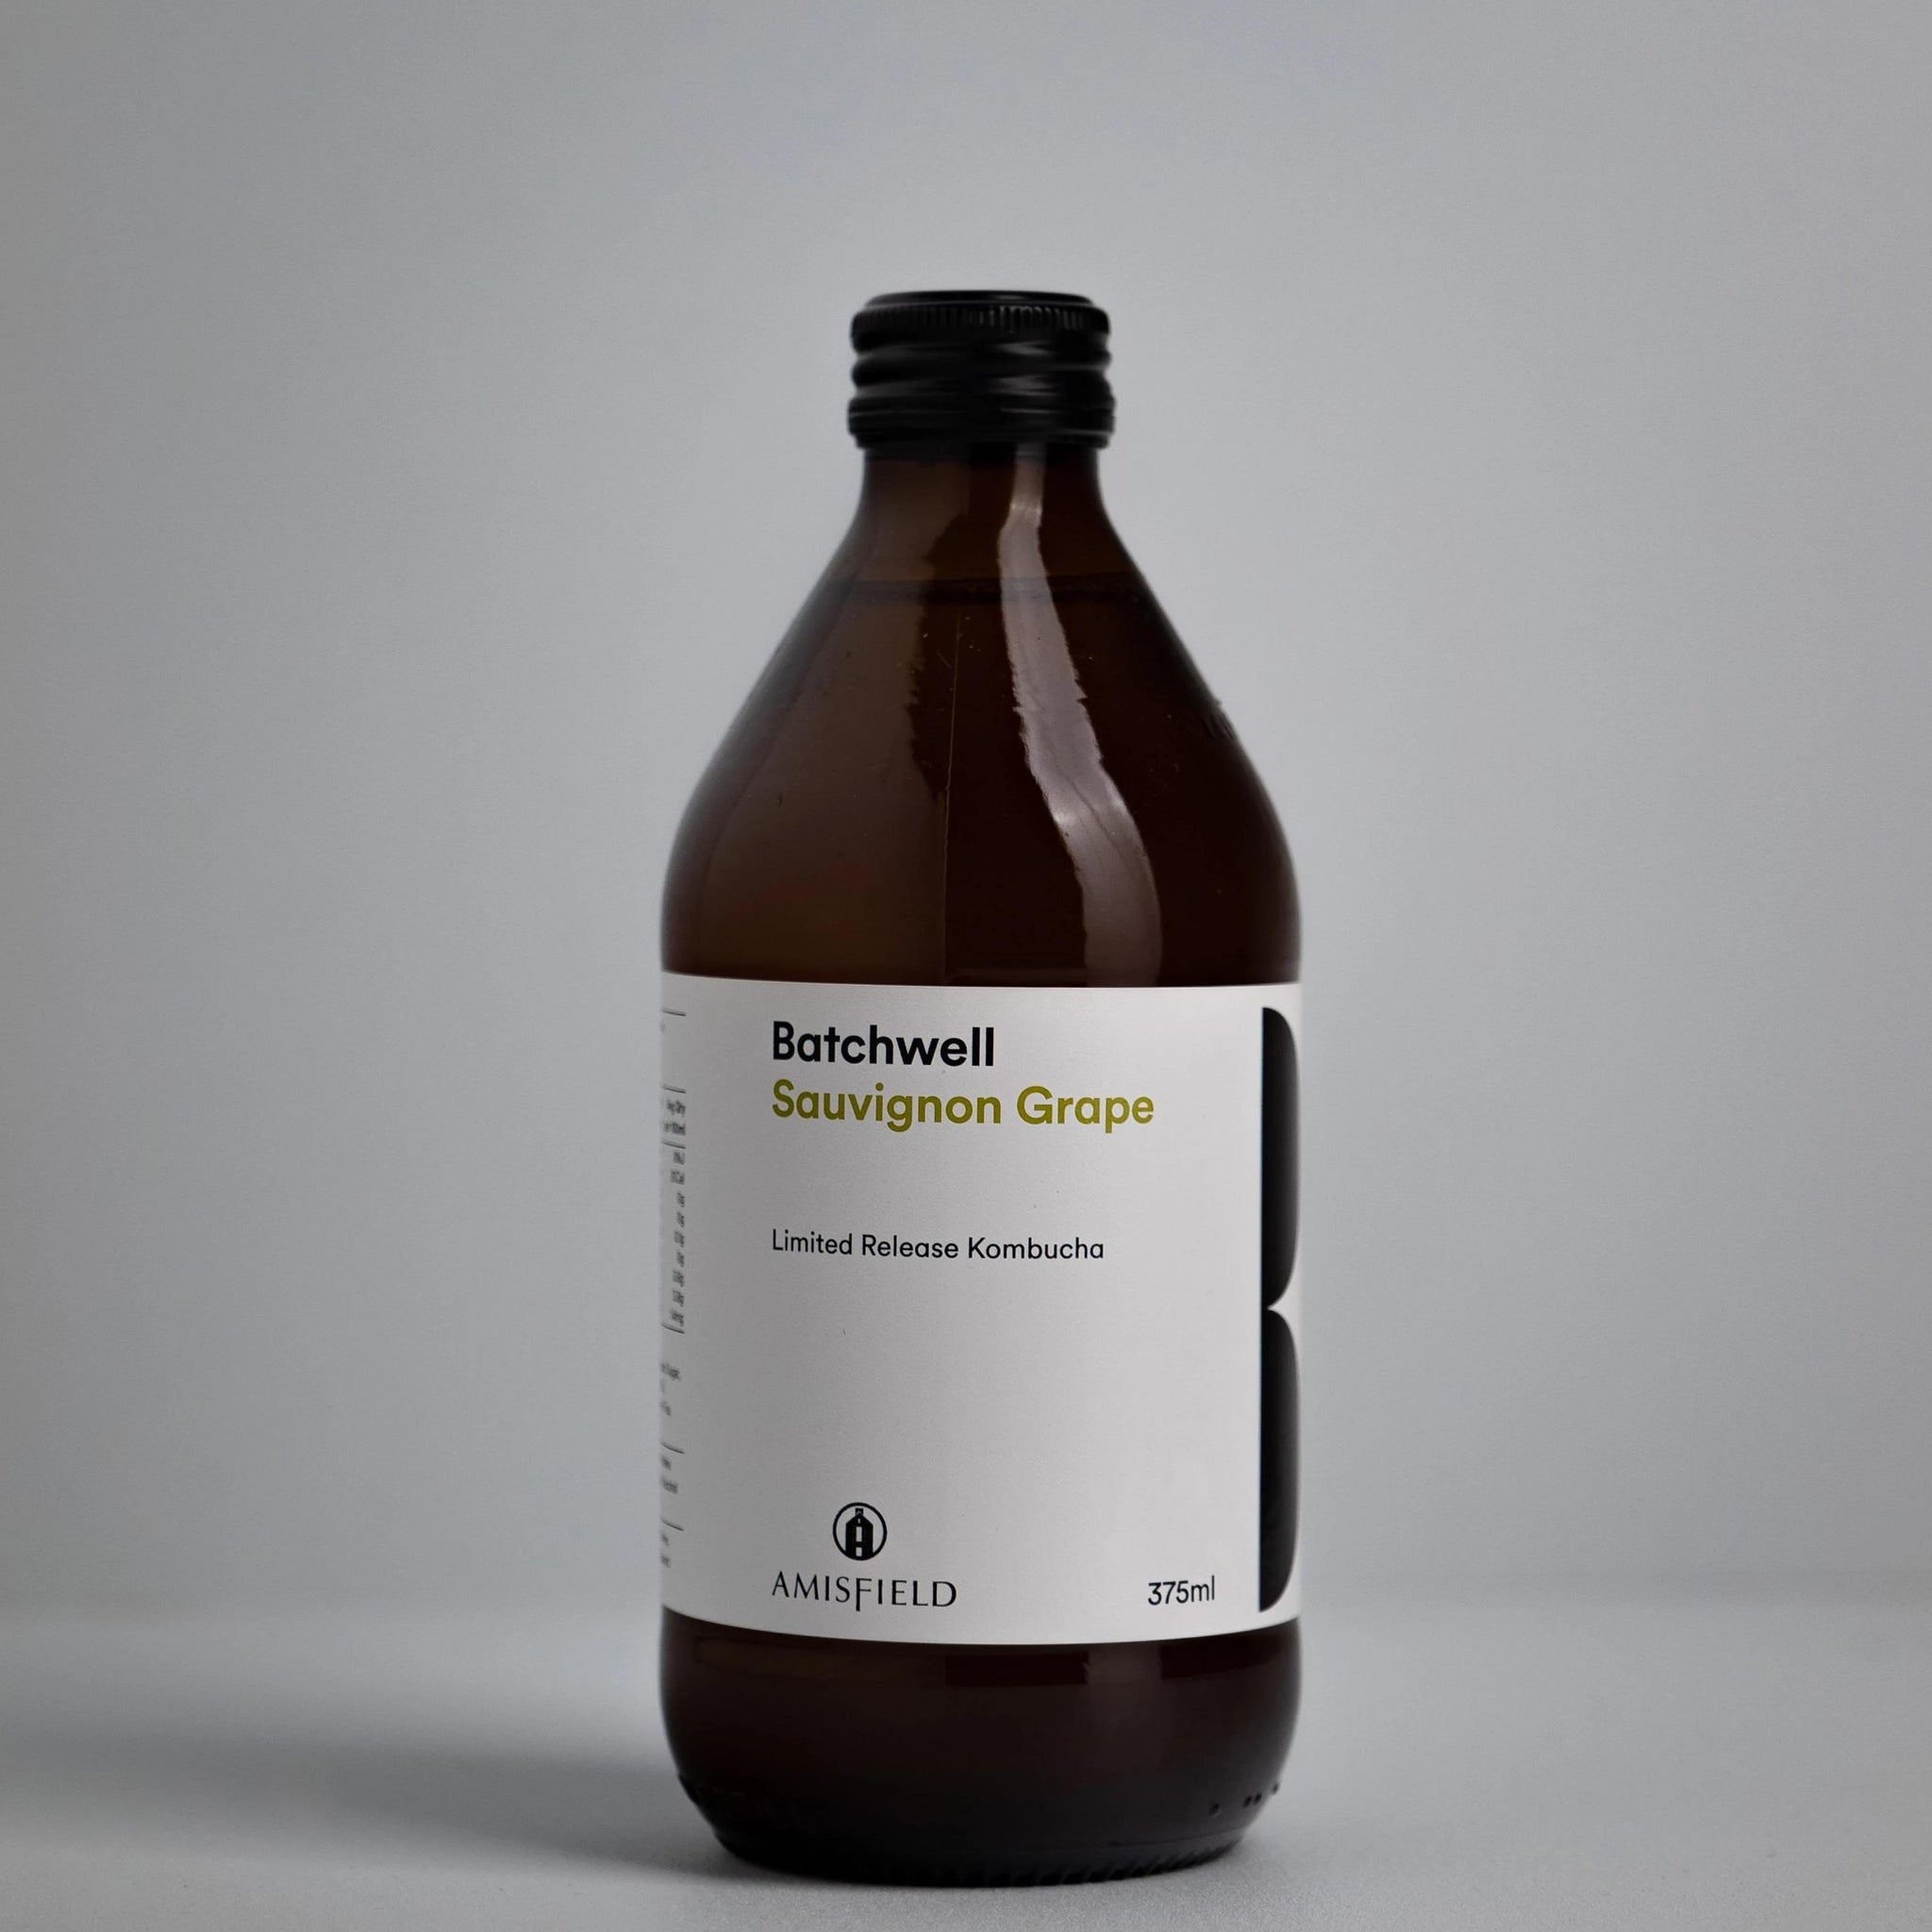 Batchwell Sauvignon Grape Kombucha